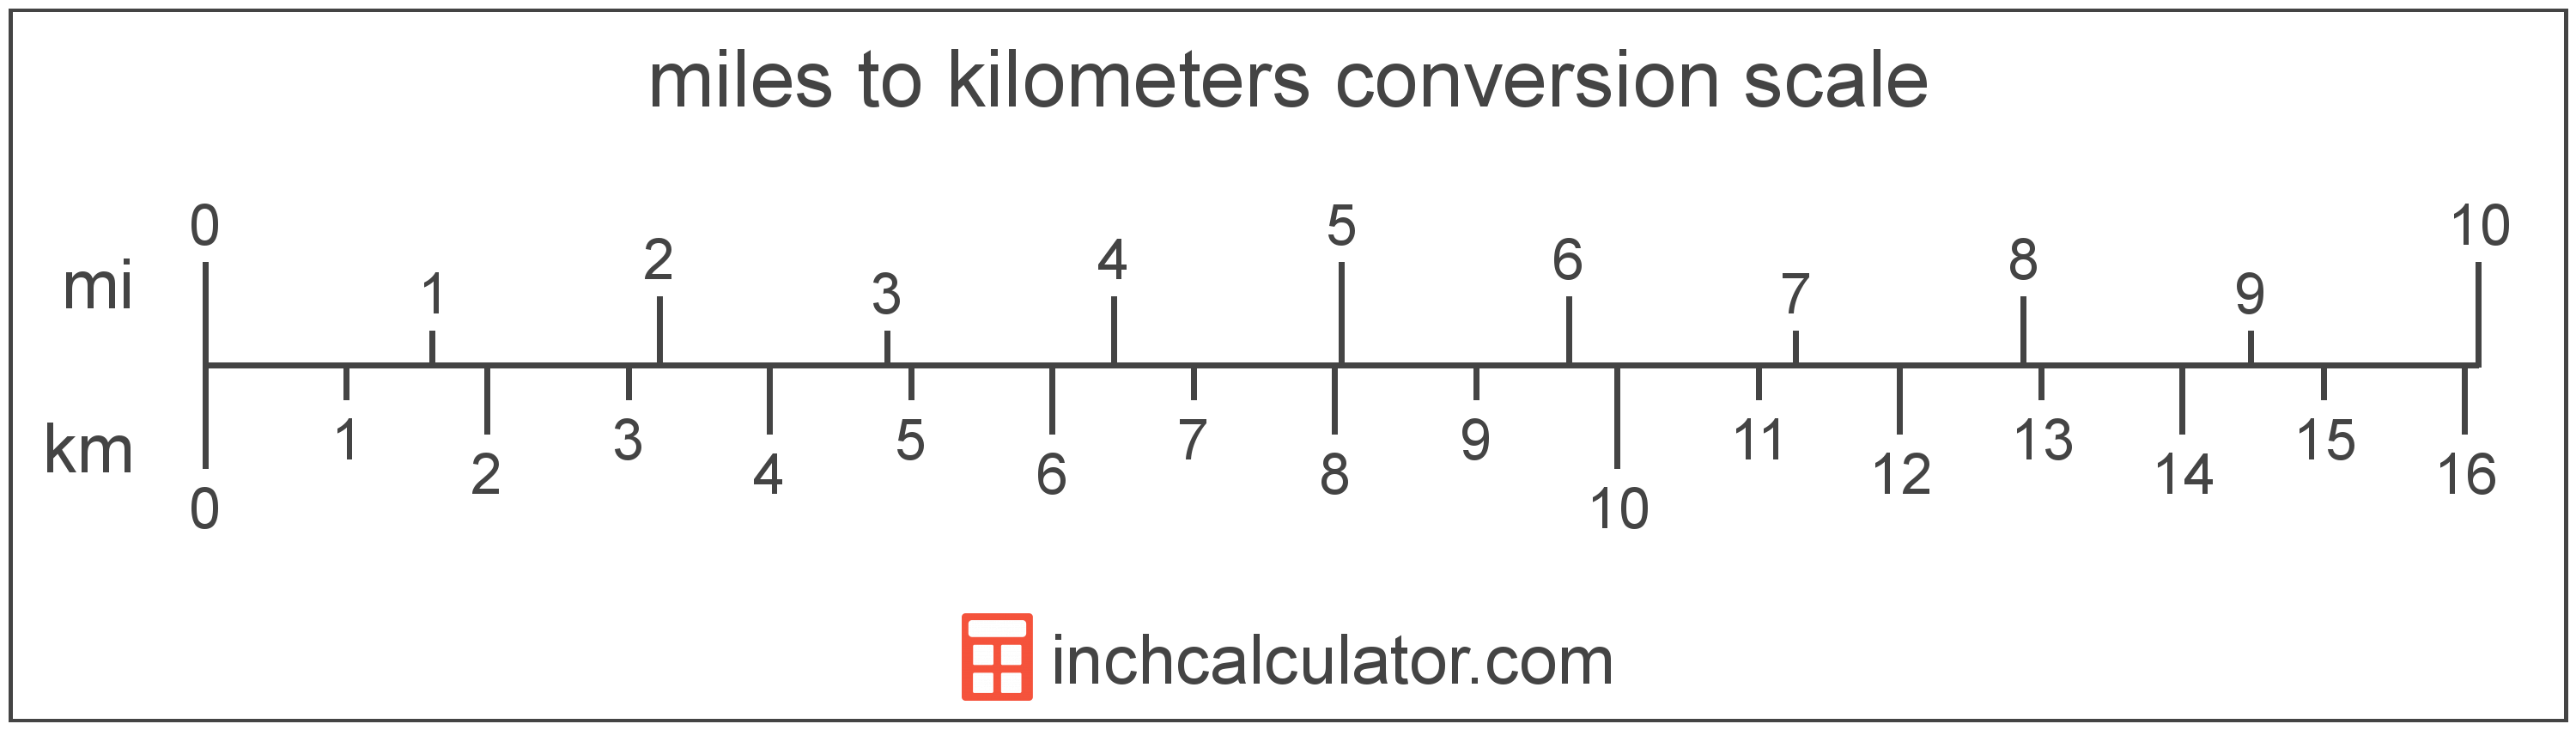 micrometers and kilometers are units used to measure length